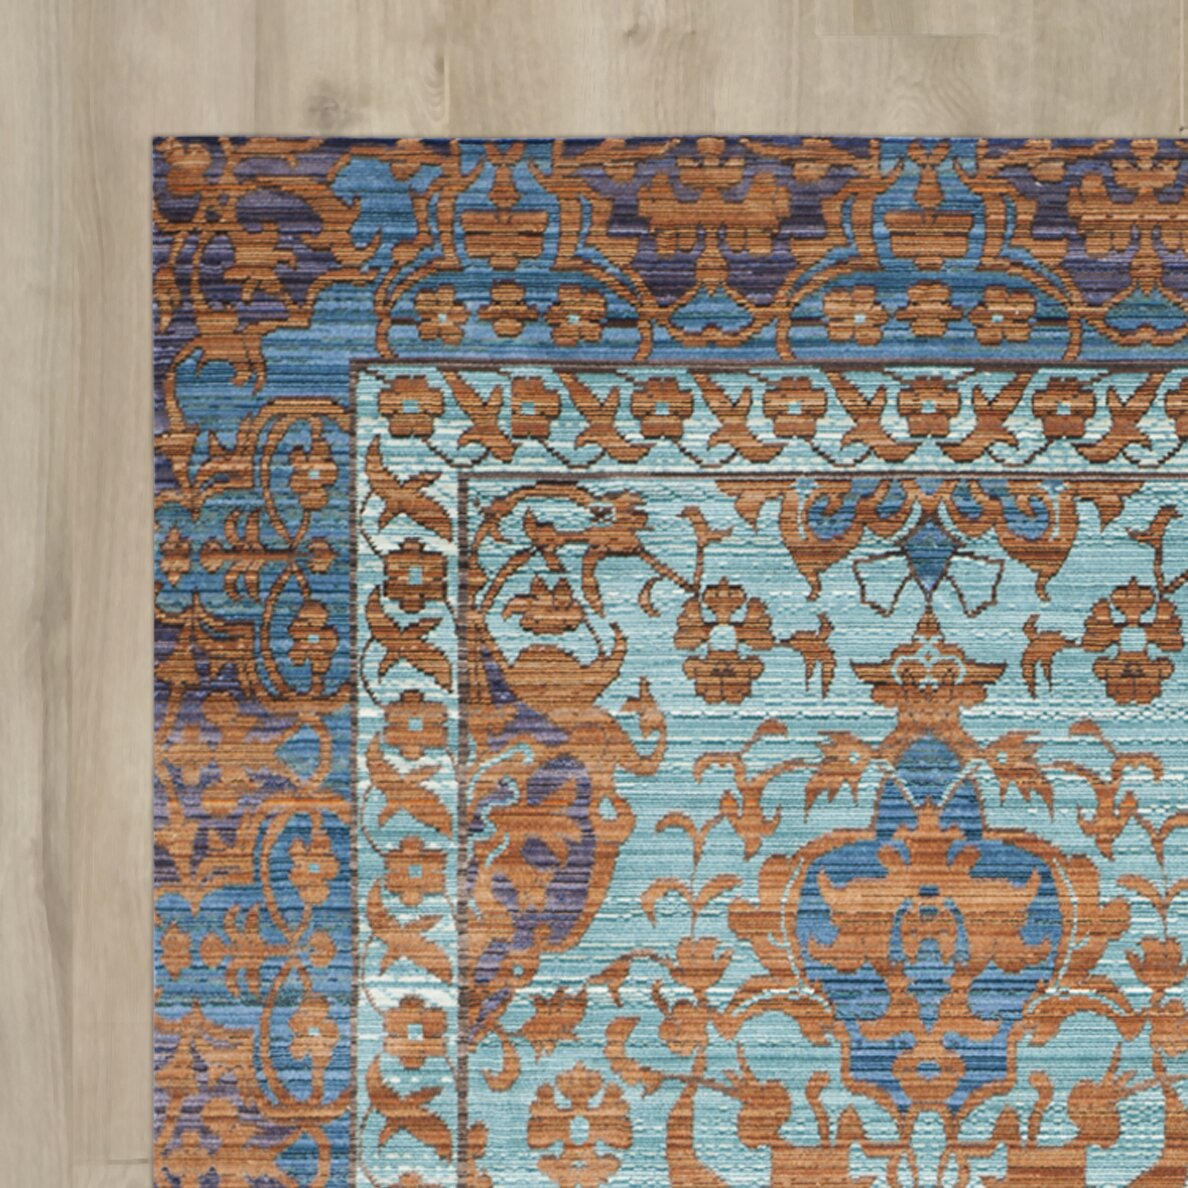 Large Area Rugs Gold: Bungalow Rose Thanh Blue/Gold Area Rug & Reviews